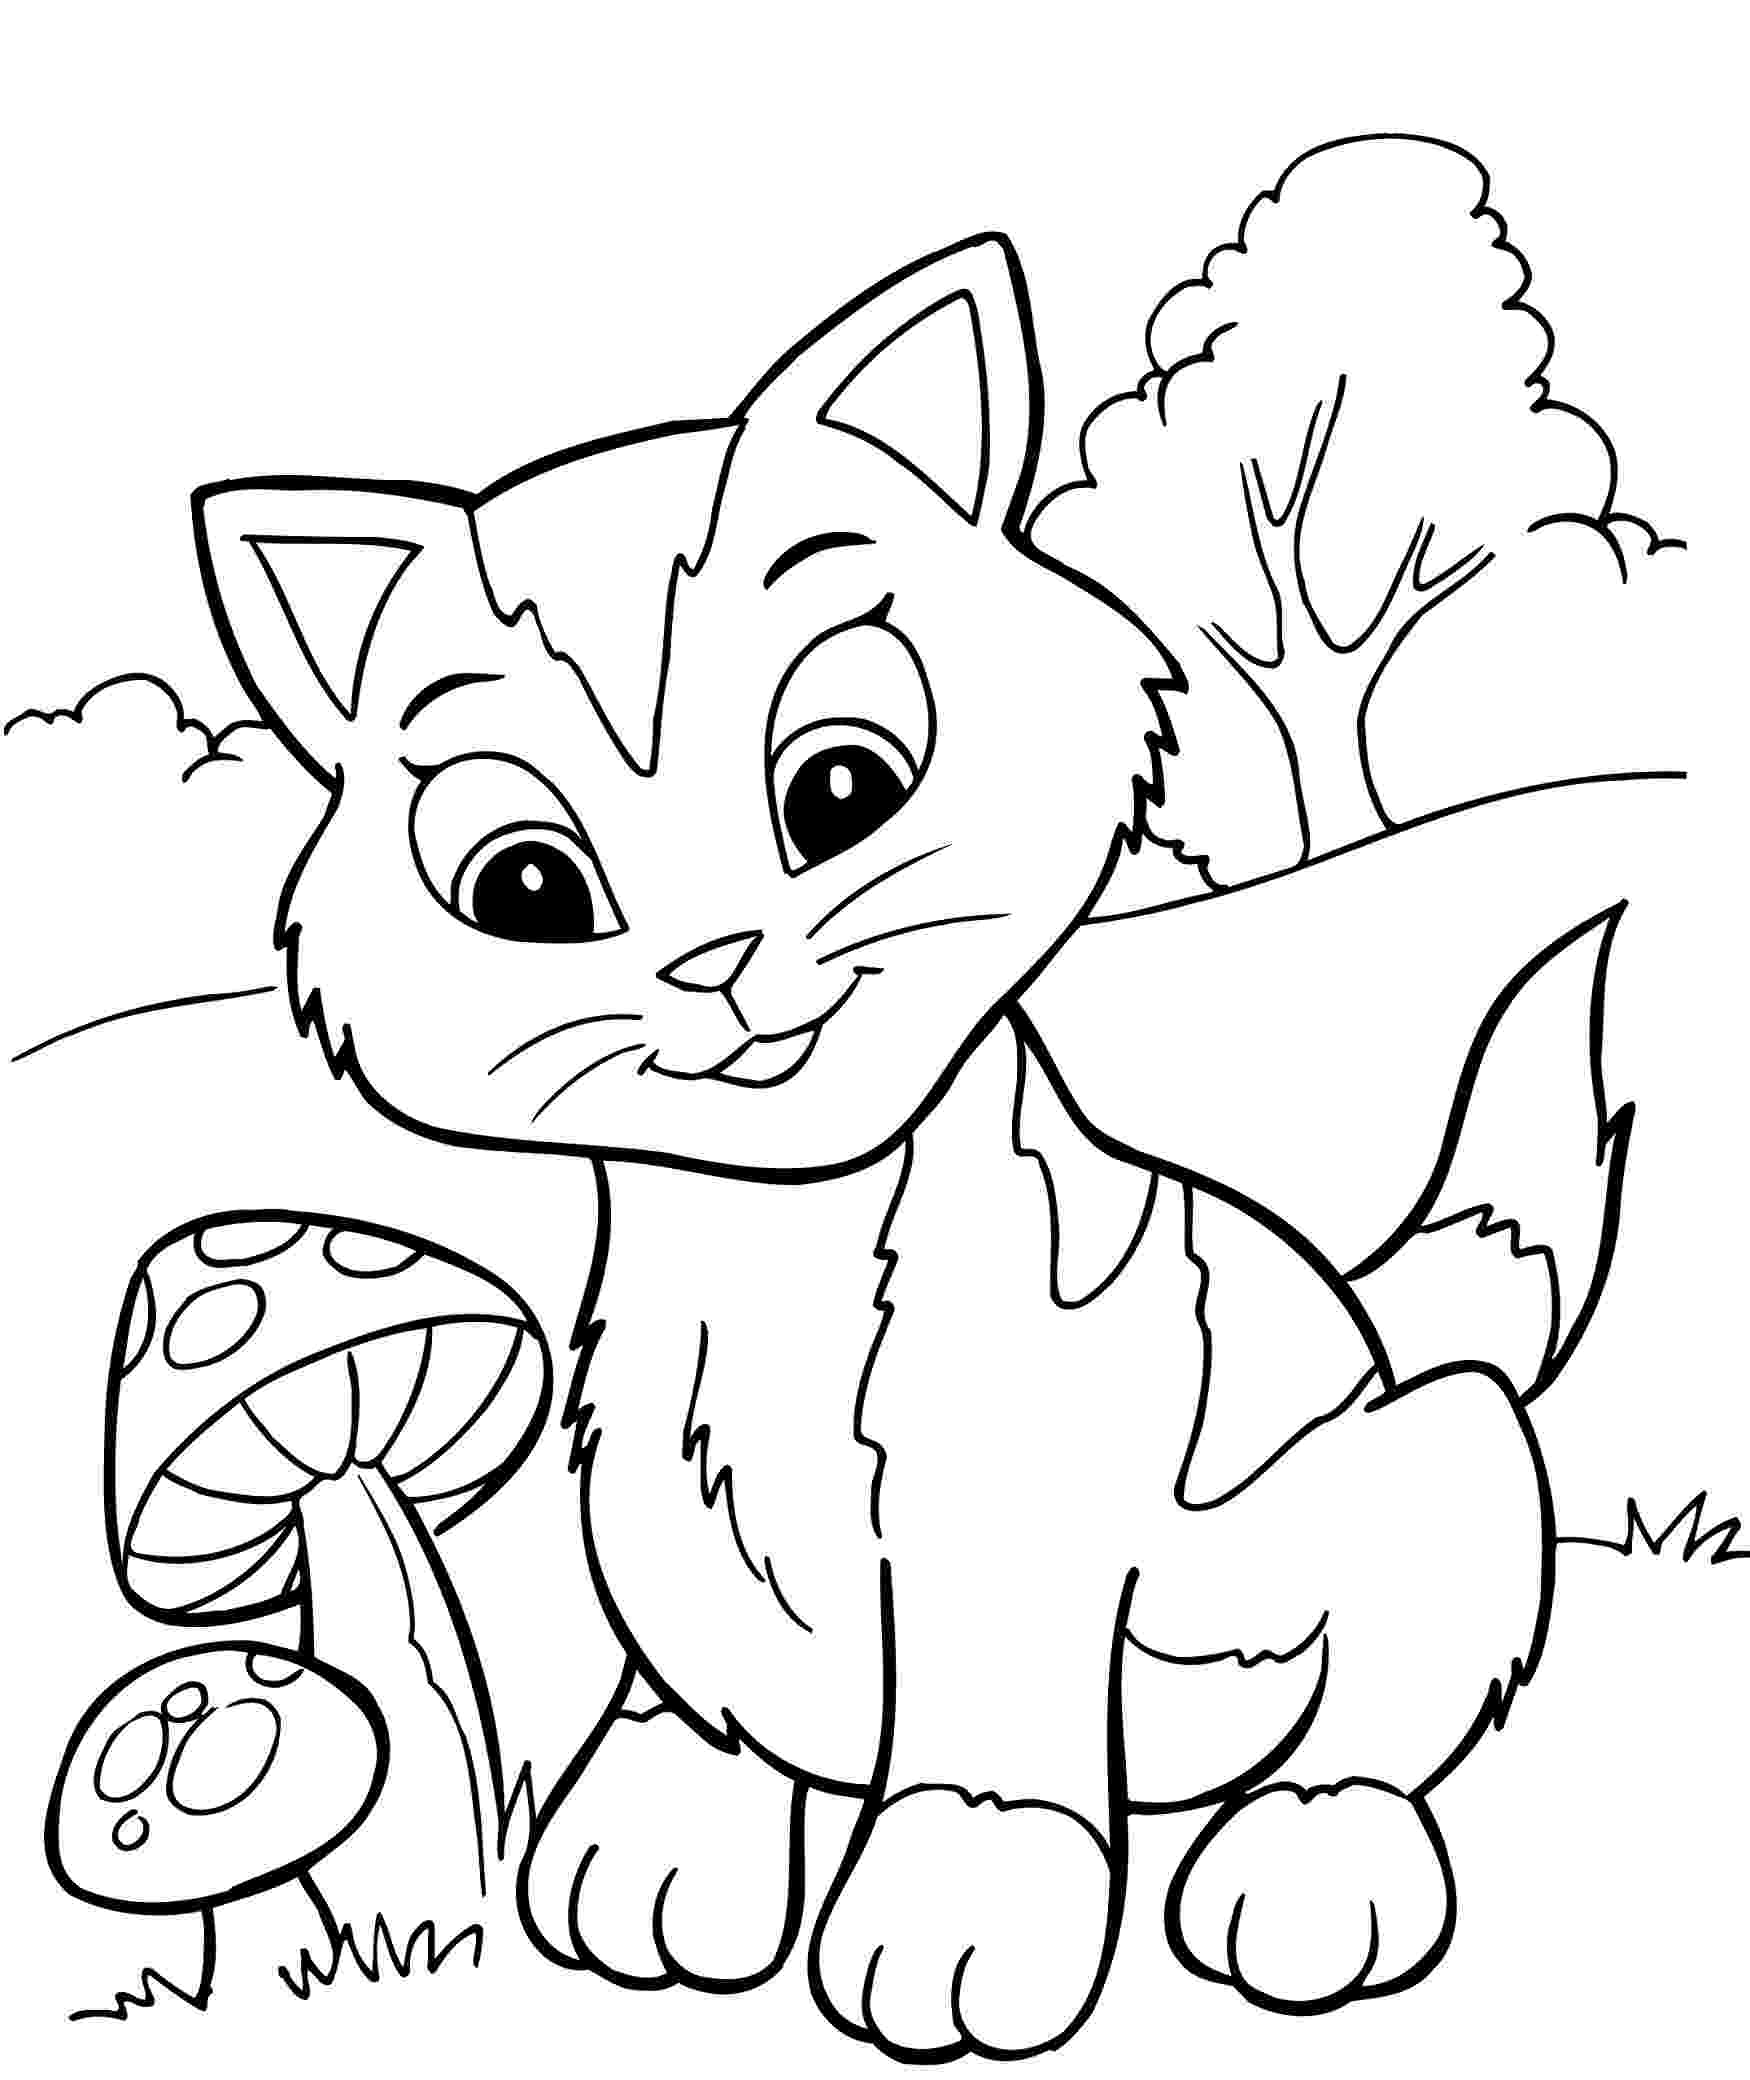 free kitten coloring pages free printable kitten coloring pages for kids best coloring pages free kitten